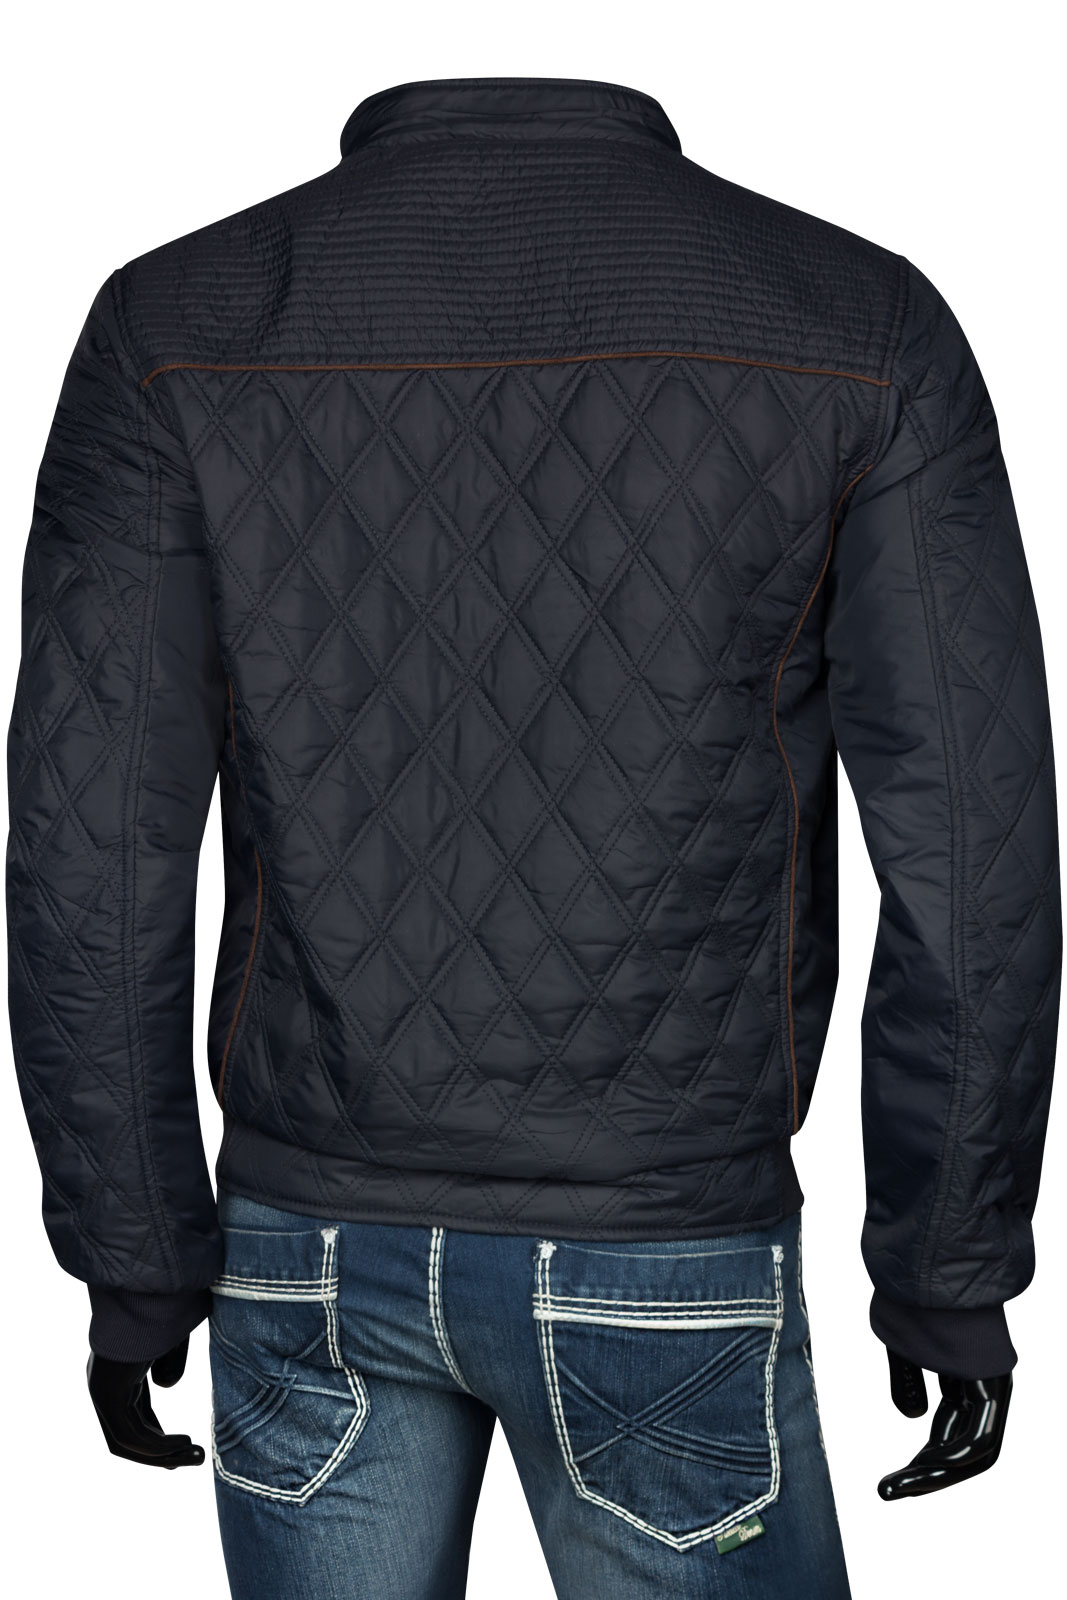 herren stepp jacke windbreaker blouson bergangsjacke sportjacke biker ebay. Black Bedroom Furniture Sets. Home Design Ideas